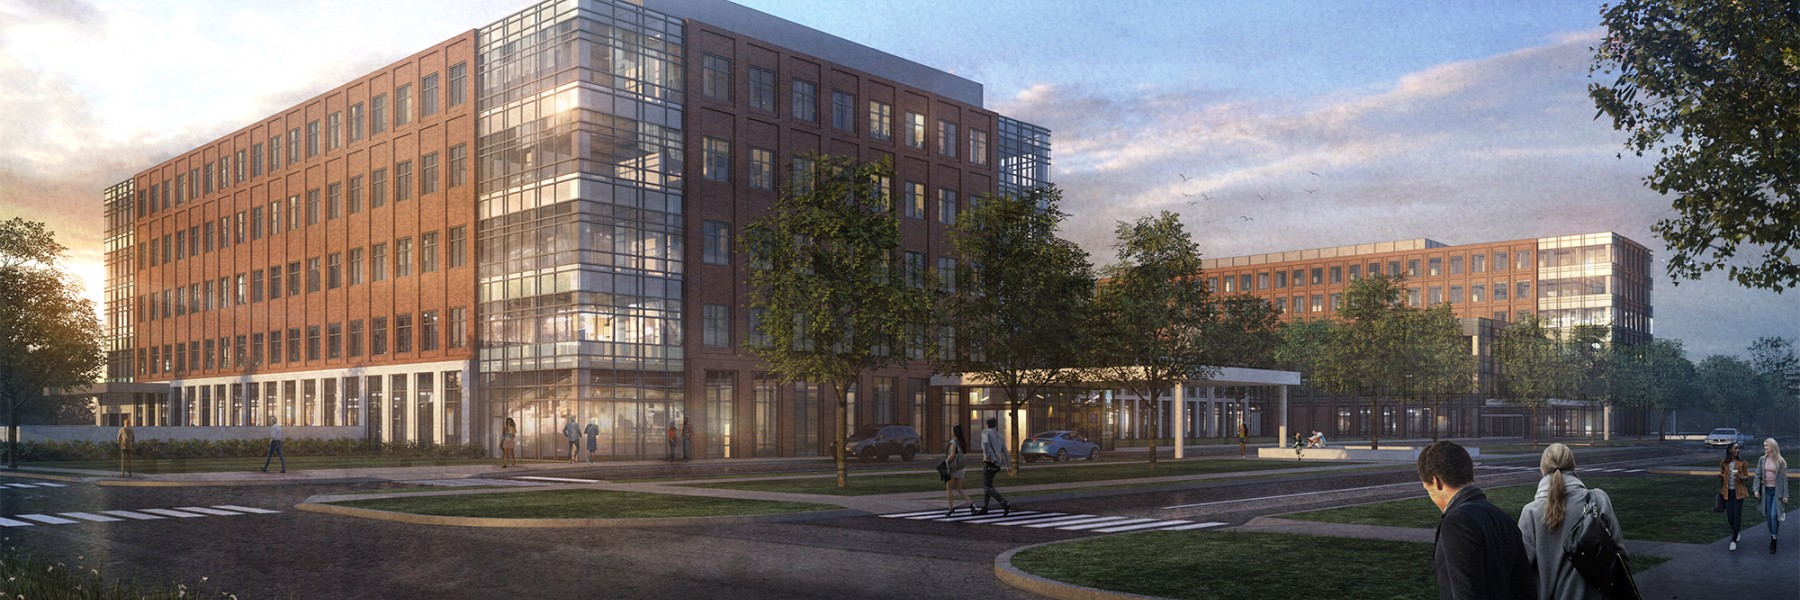 rendering of the facade of thel new Outpatient Care facility in New Albany, approximately 4 stories tall